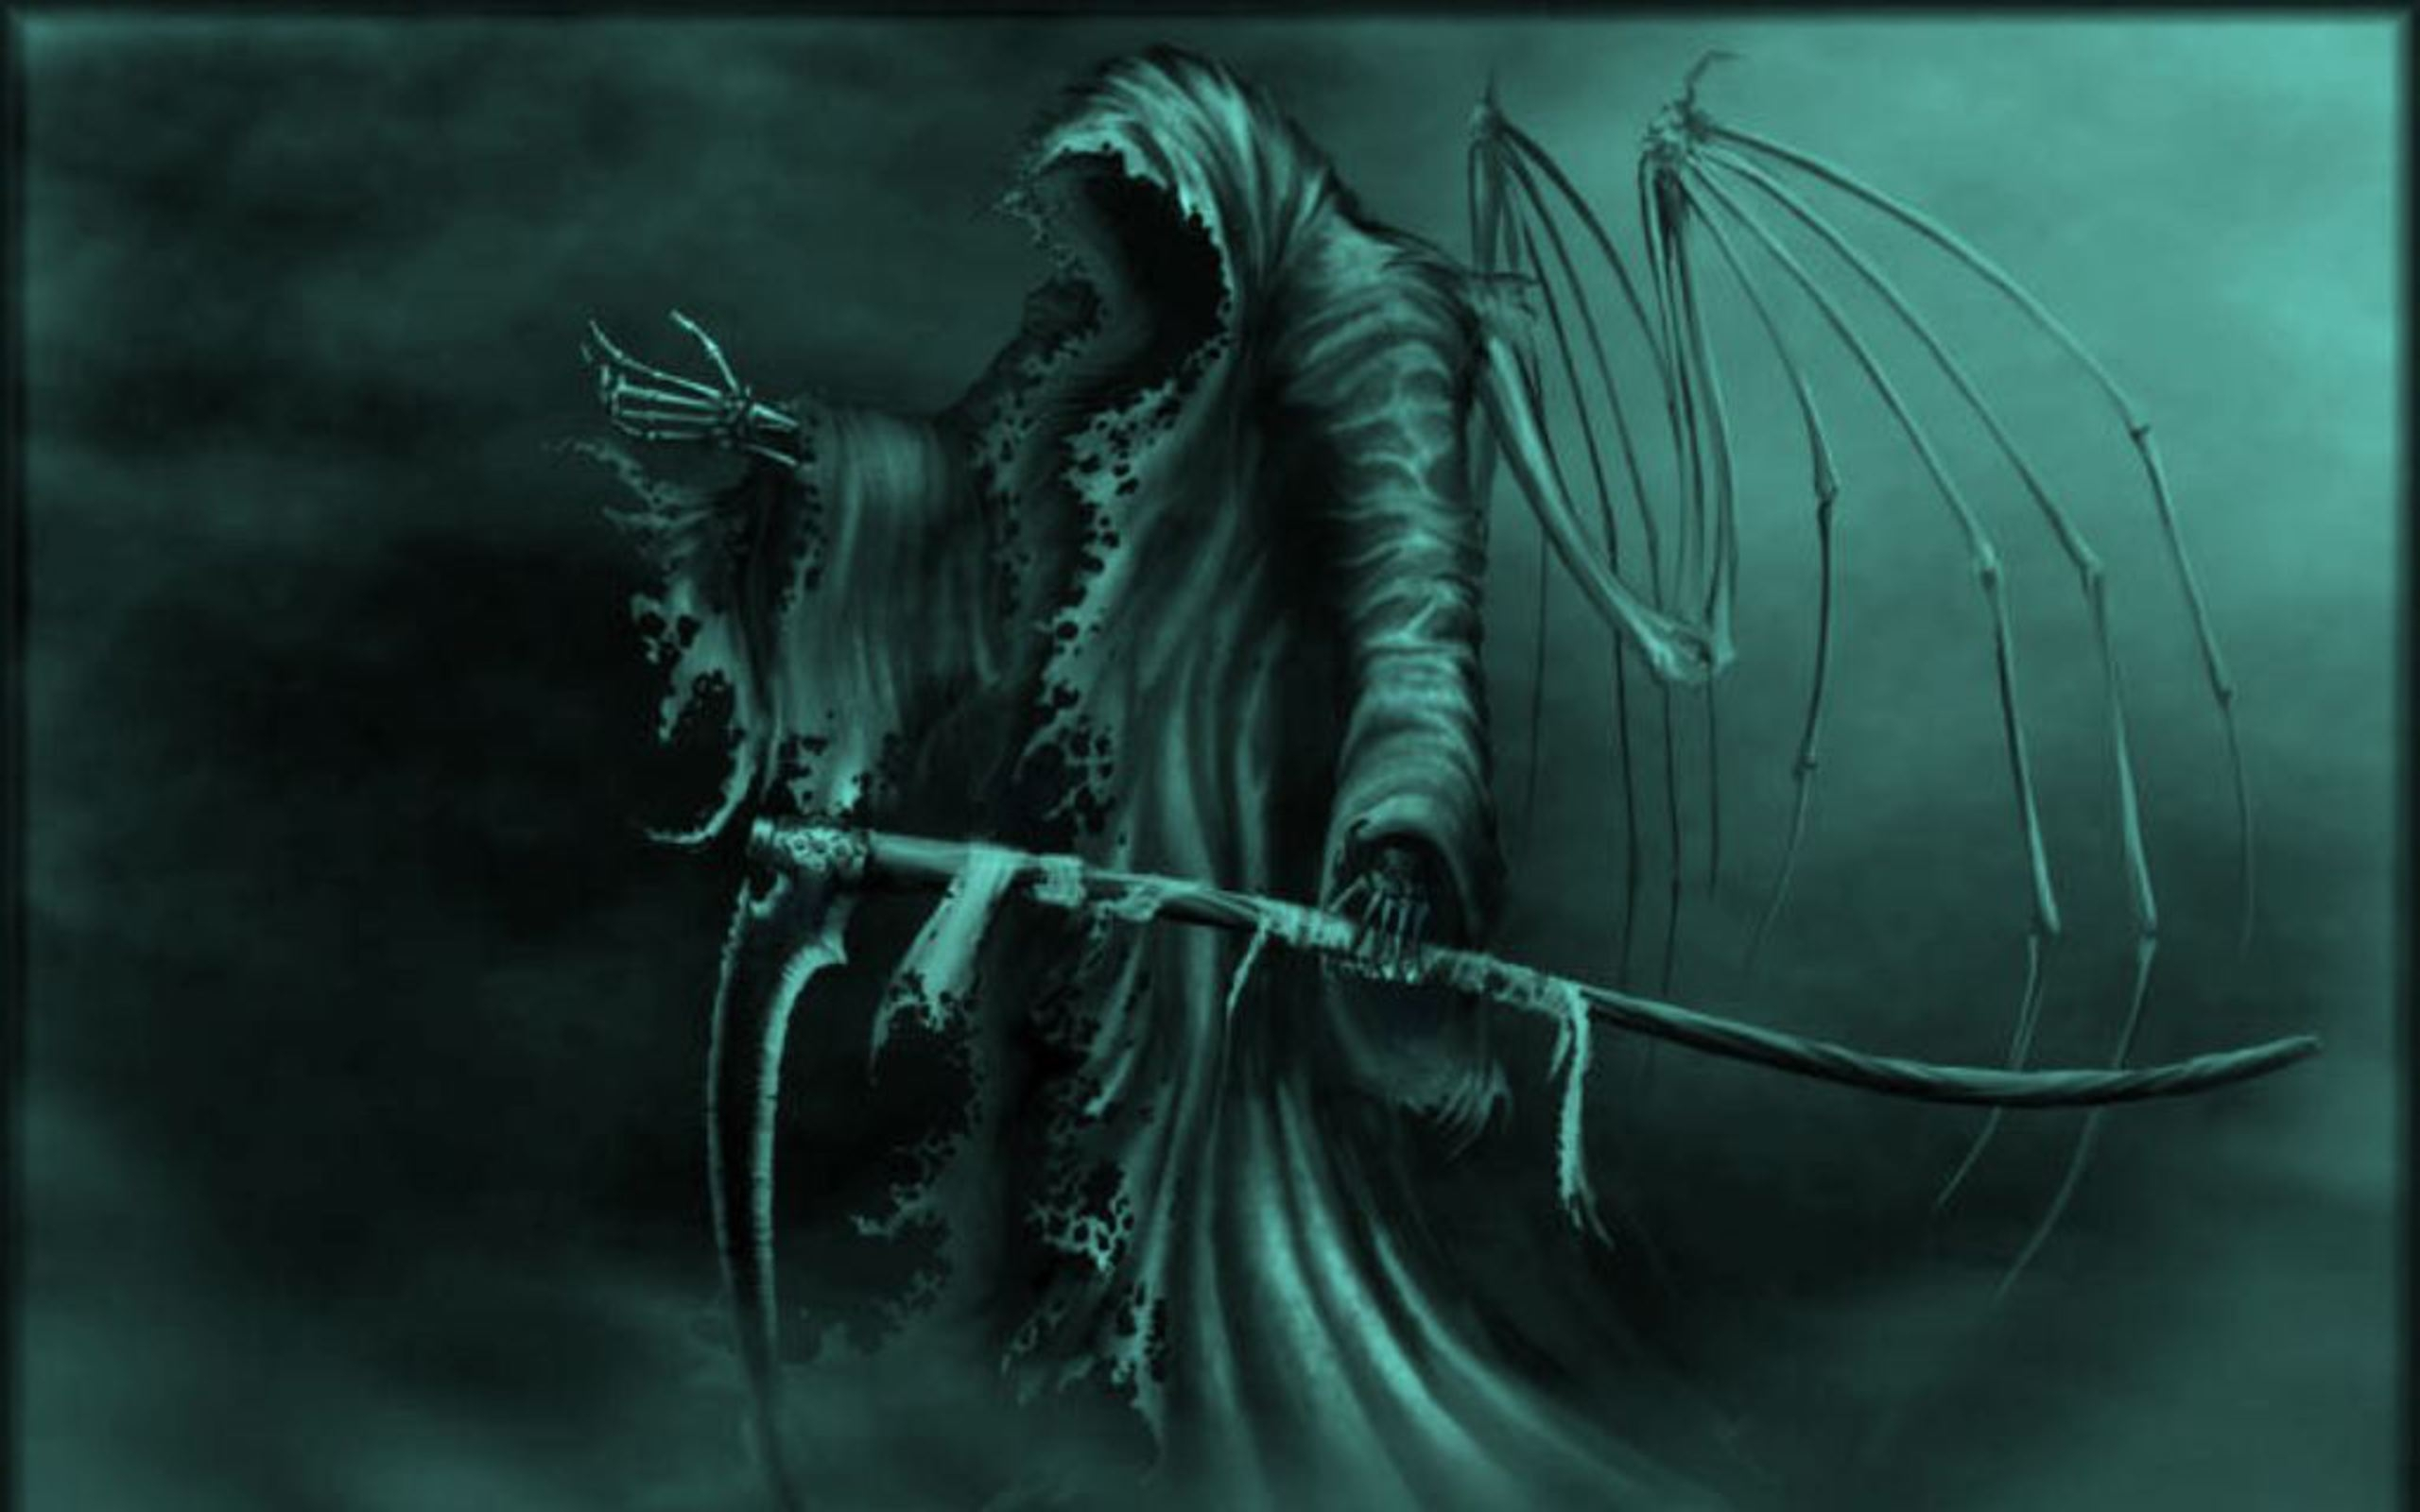 grim reaper full hd wallpaper and background image | 2560x1600 | id